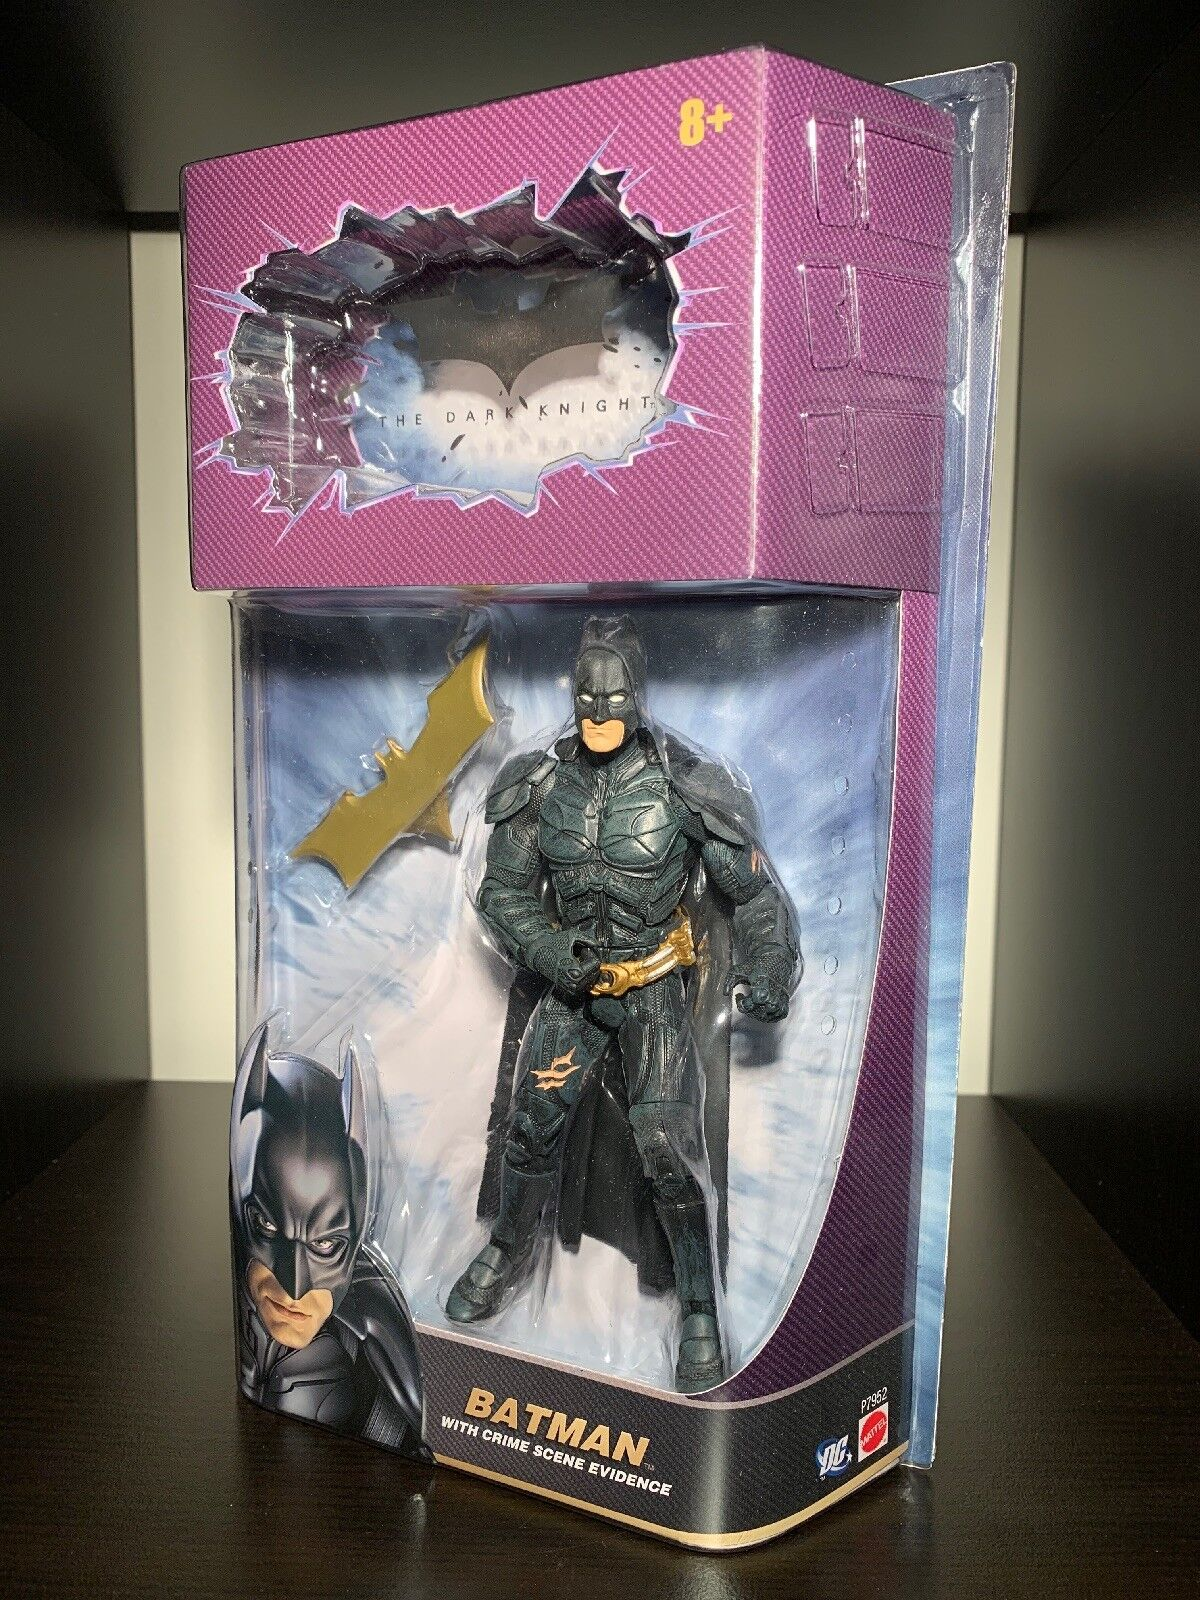 Bathomme Night  Vision bataille Dark Knight Mattel Movie Masters Matty Exclusive  jusqu'à 42% de réduction